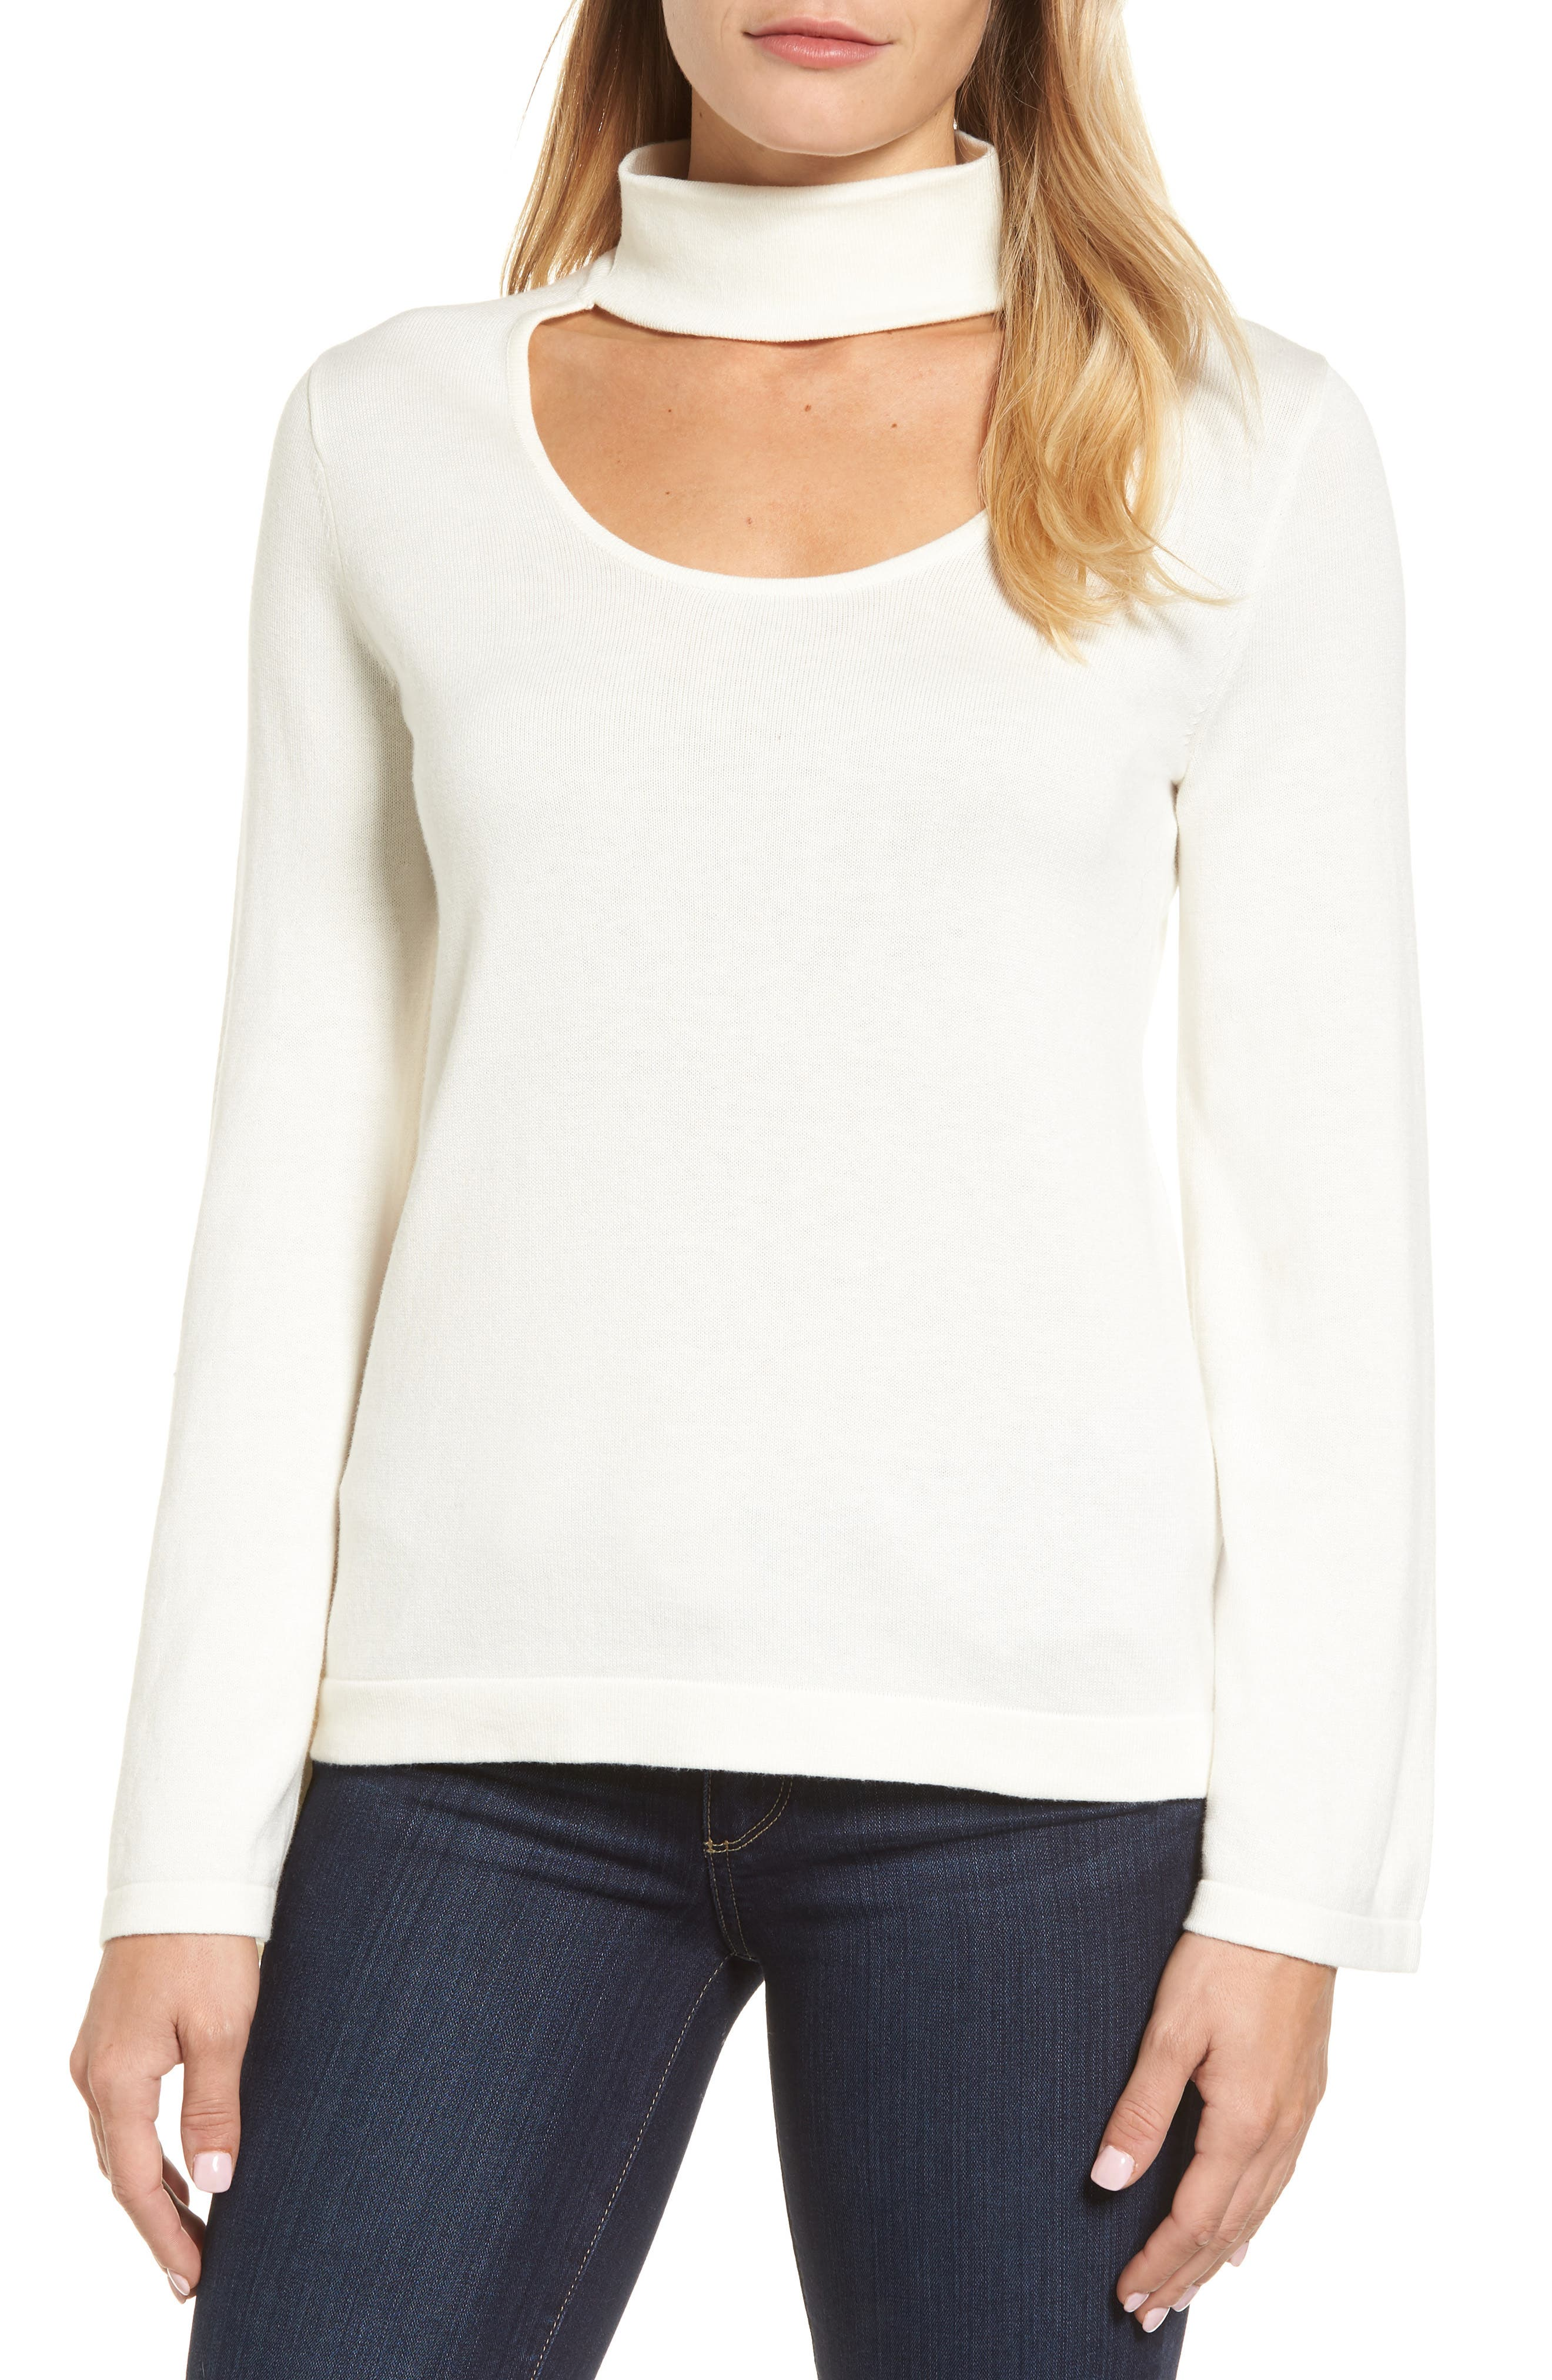 Main Image - Vince Camuto Bell Sleeve Choker Neck Sweater (Regular & Petite)